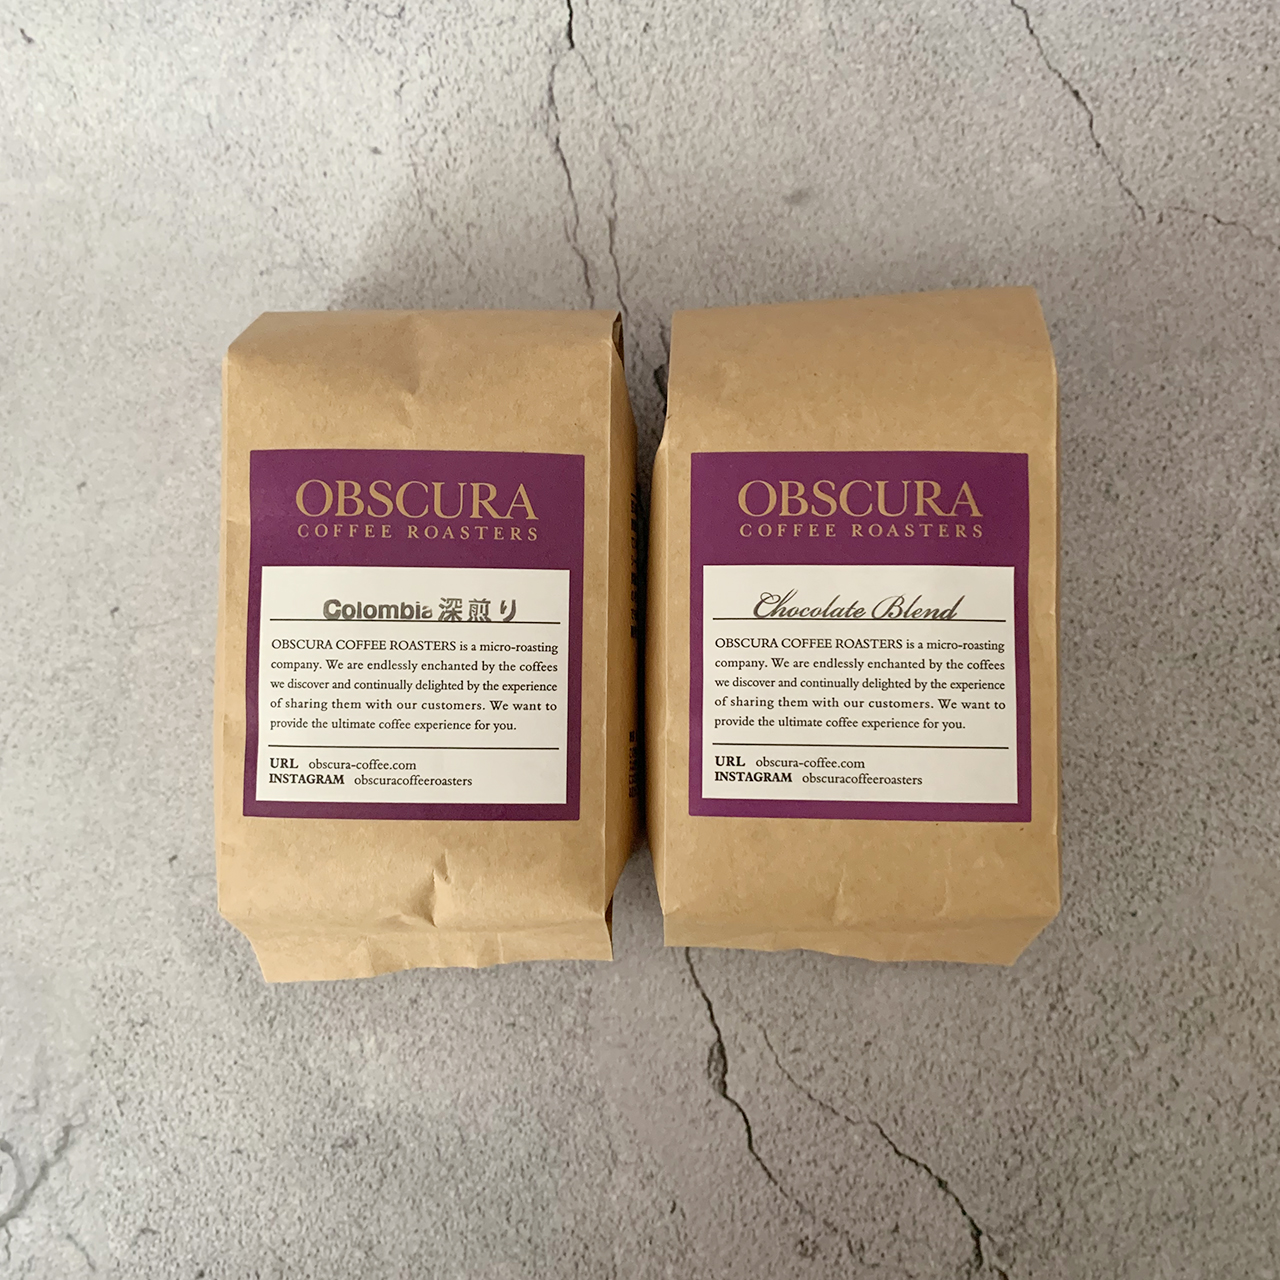 OBSCURA COFFEE ROASTERS